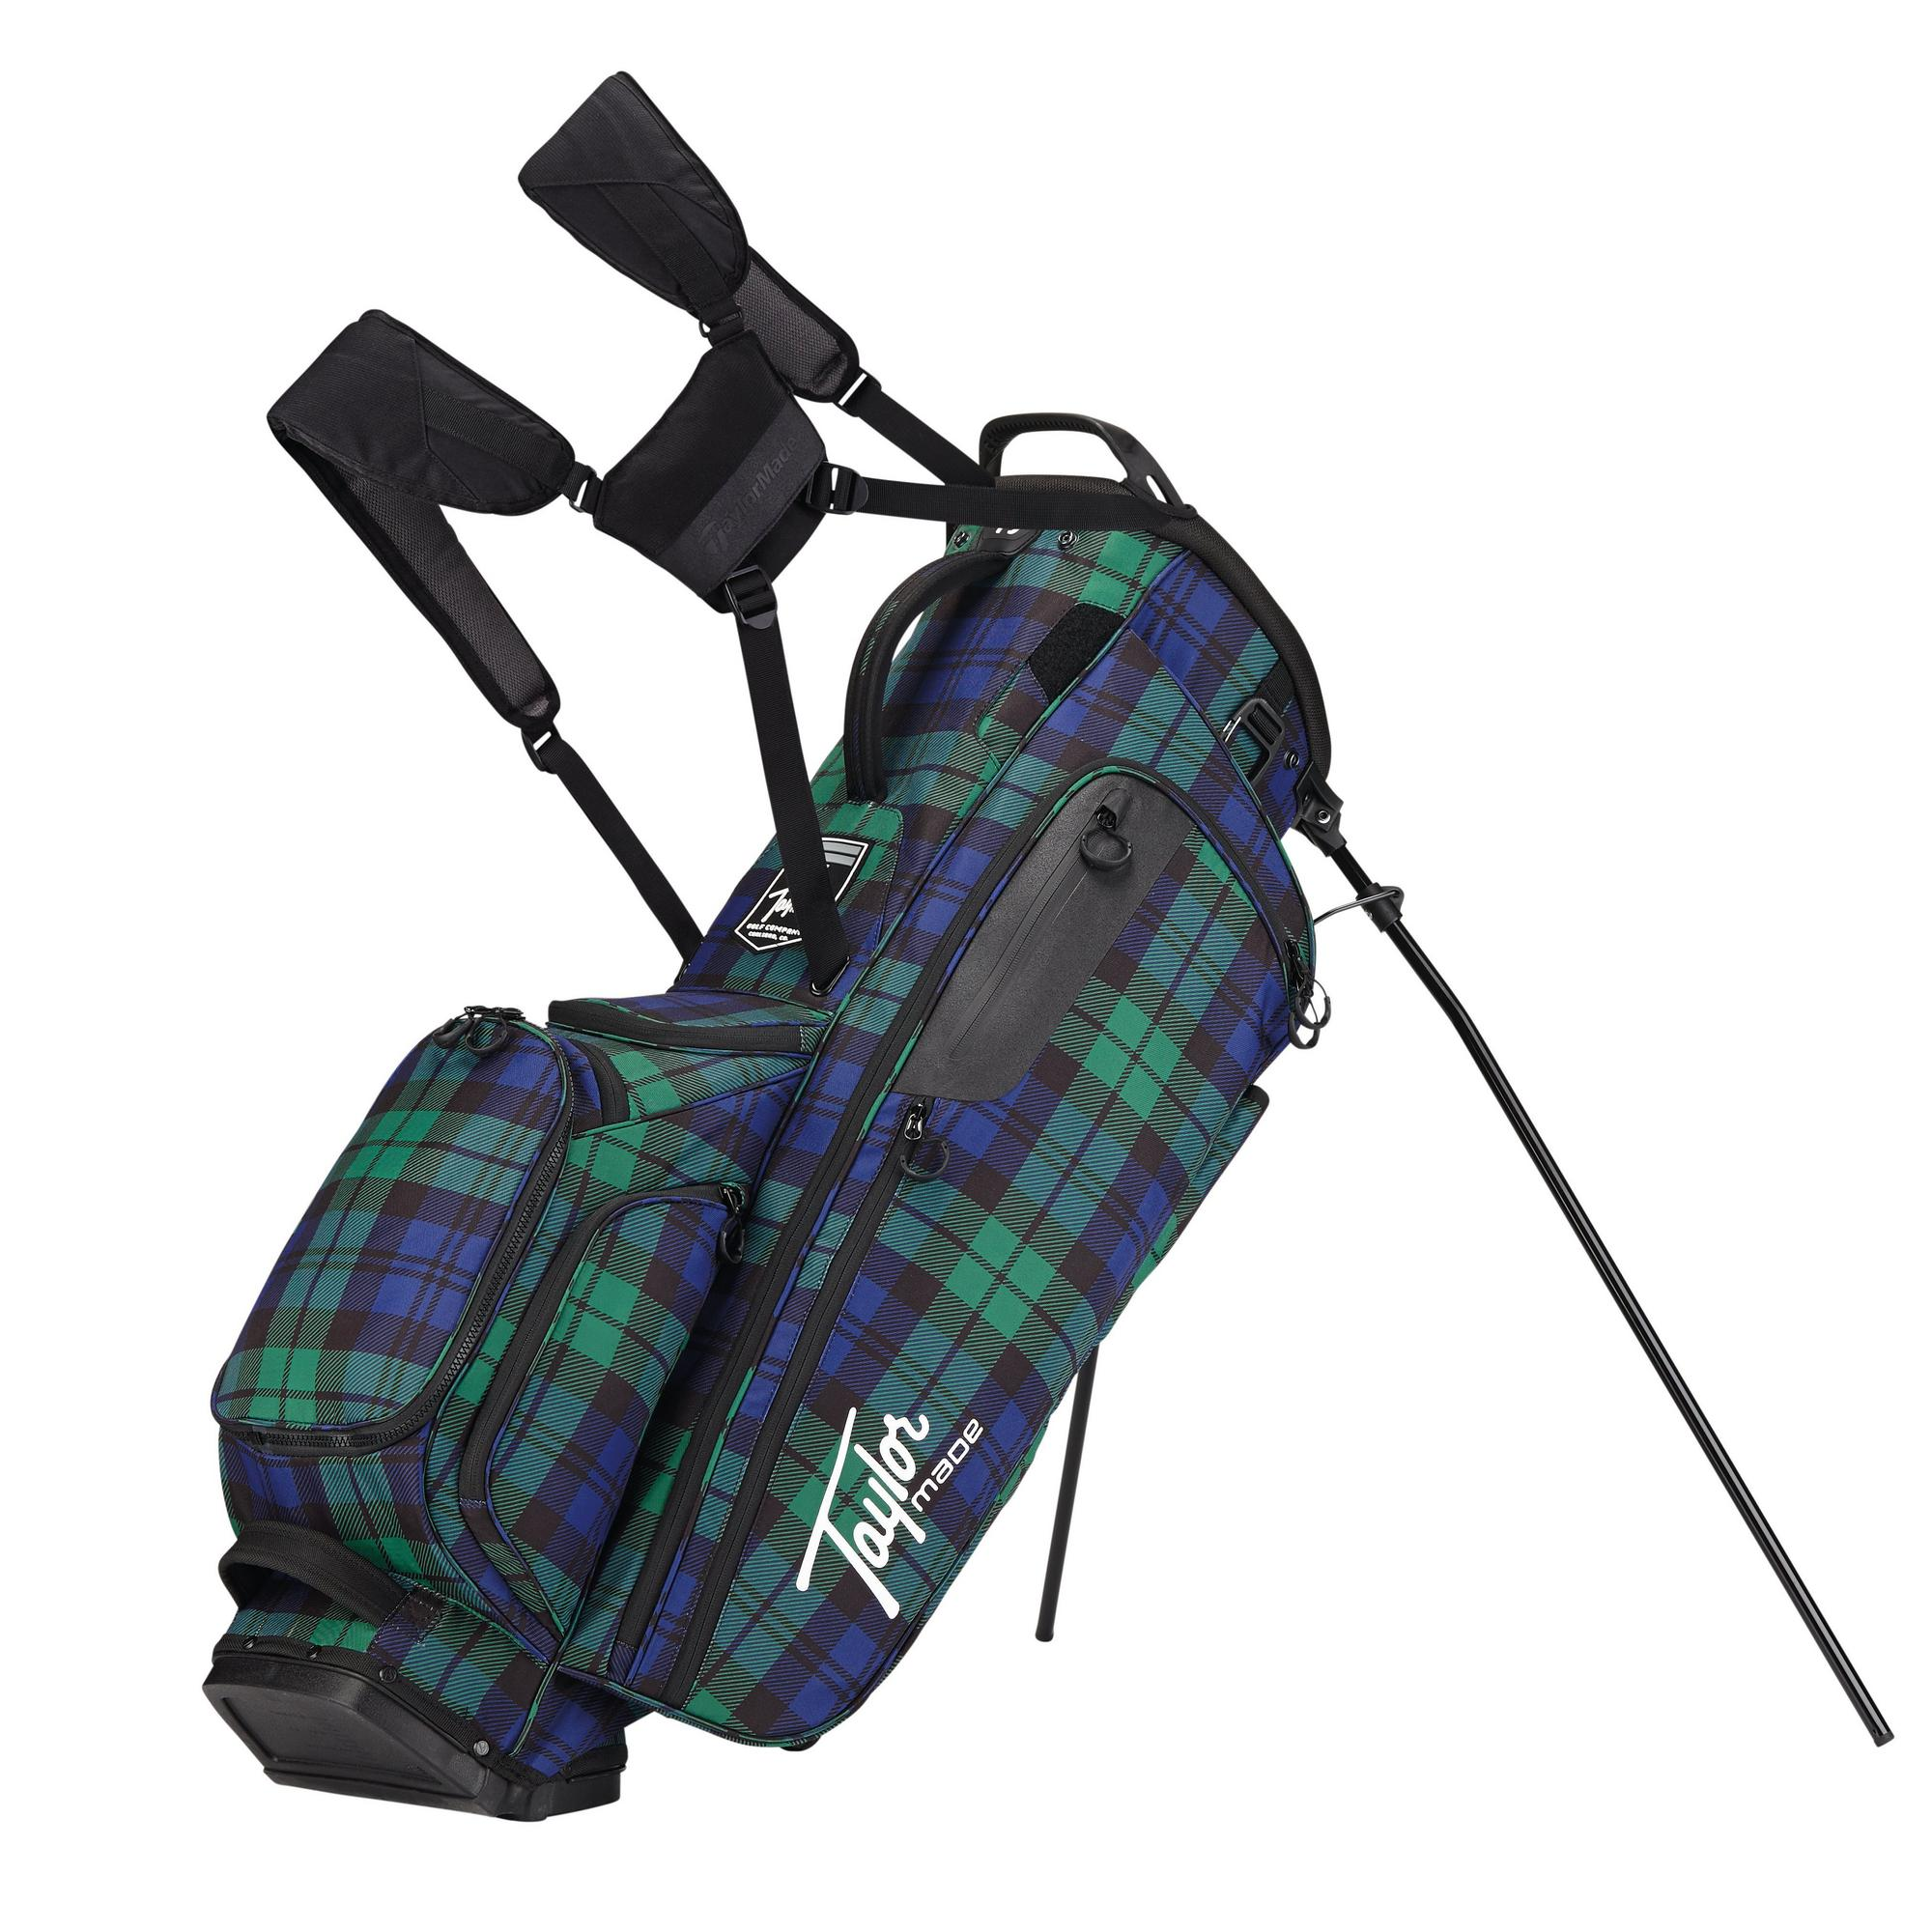 Flextech Lifetsyle Stand Bag